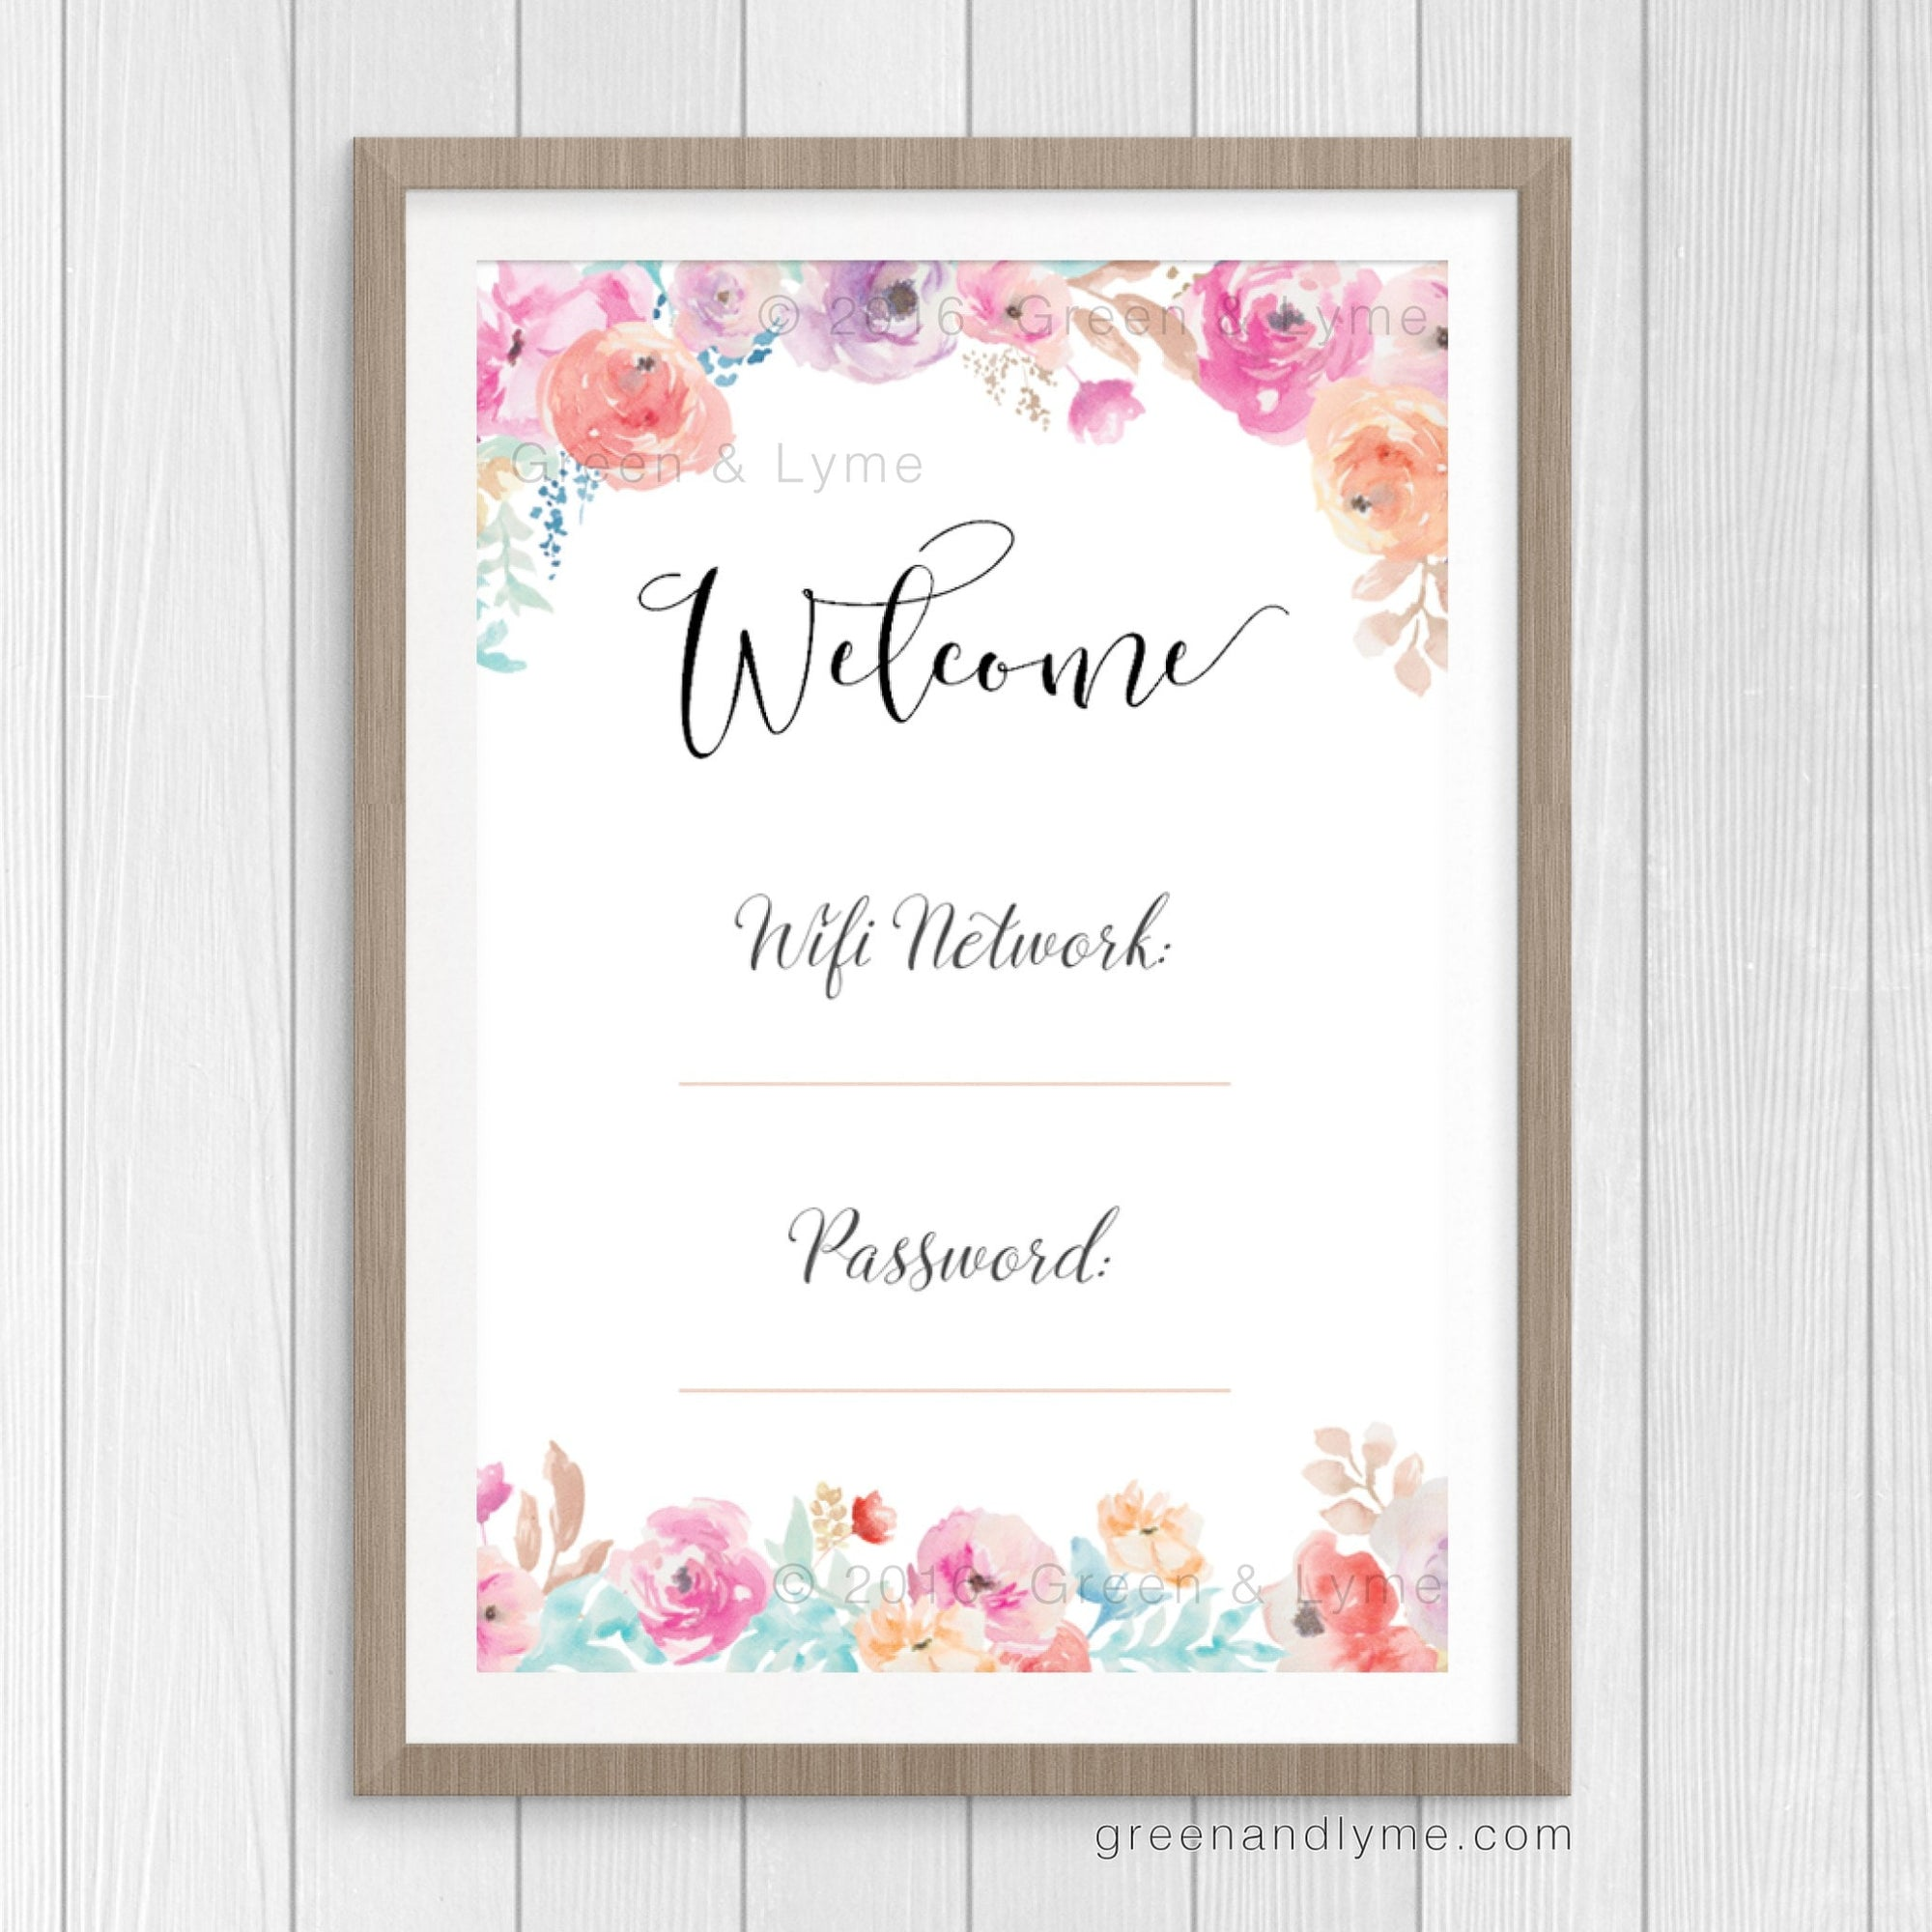 photo relating to Password Printable identified as Printable Wall Artwork: Wifi Pword Print